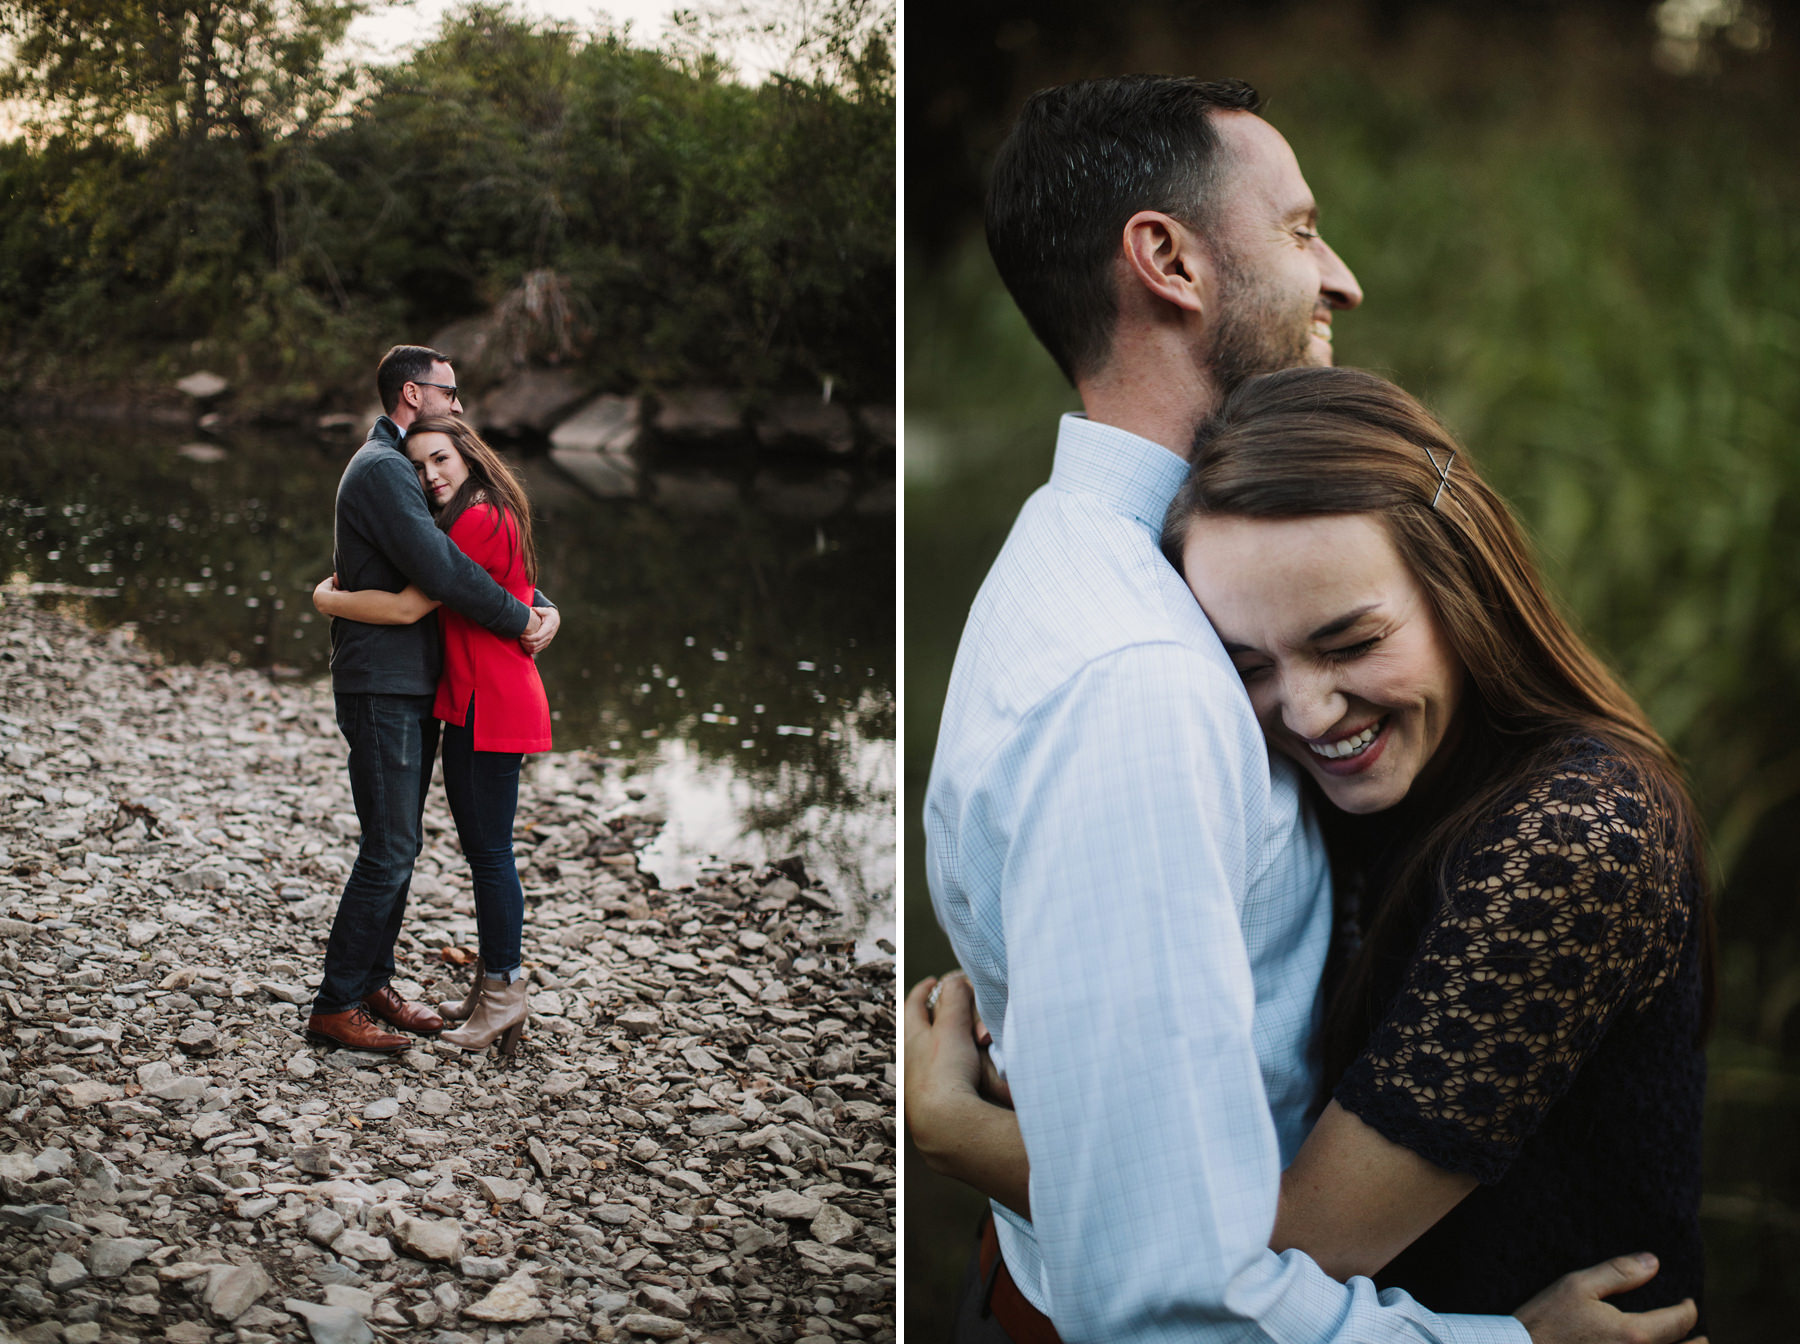 74_Leawood Engagement Session Kansas City, Missouri_Kindling Wedding Photography.JPG